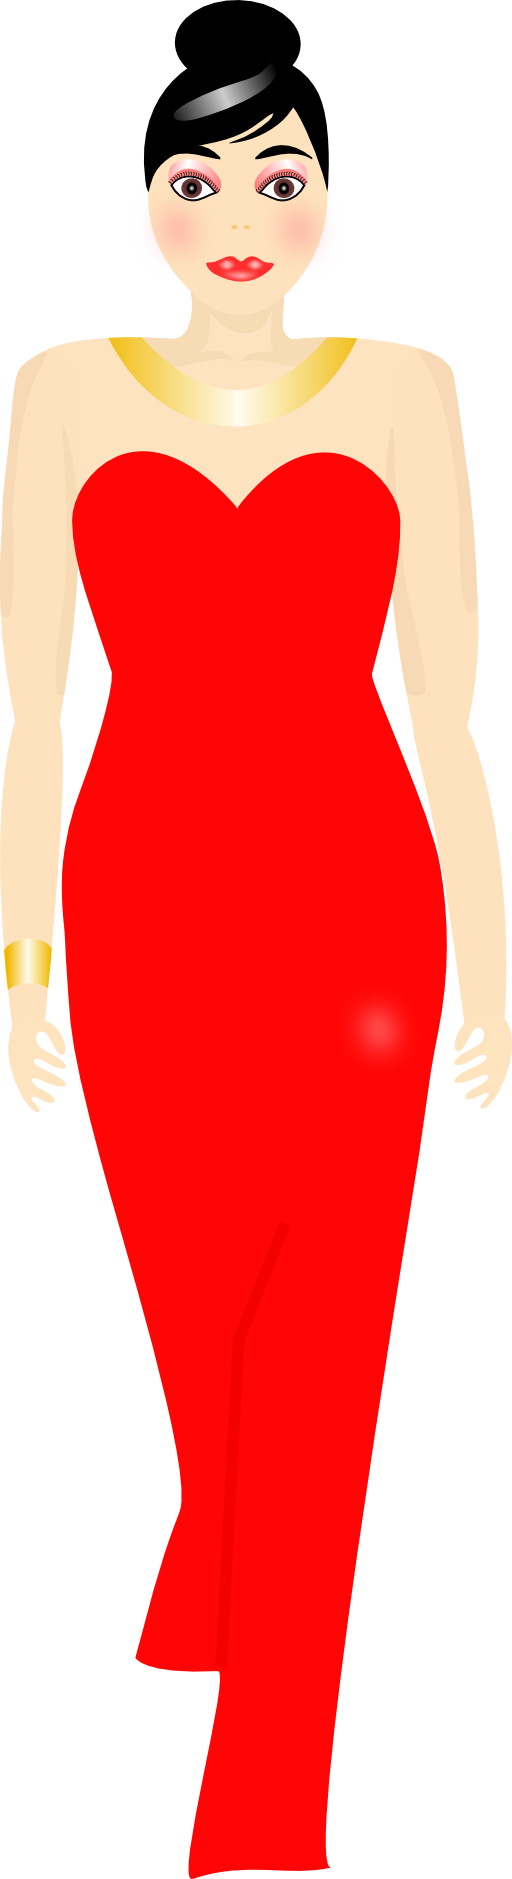 Red Dress clipart Clipart Red Free Dress Clipart